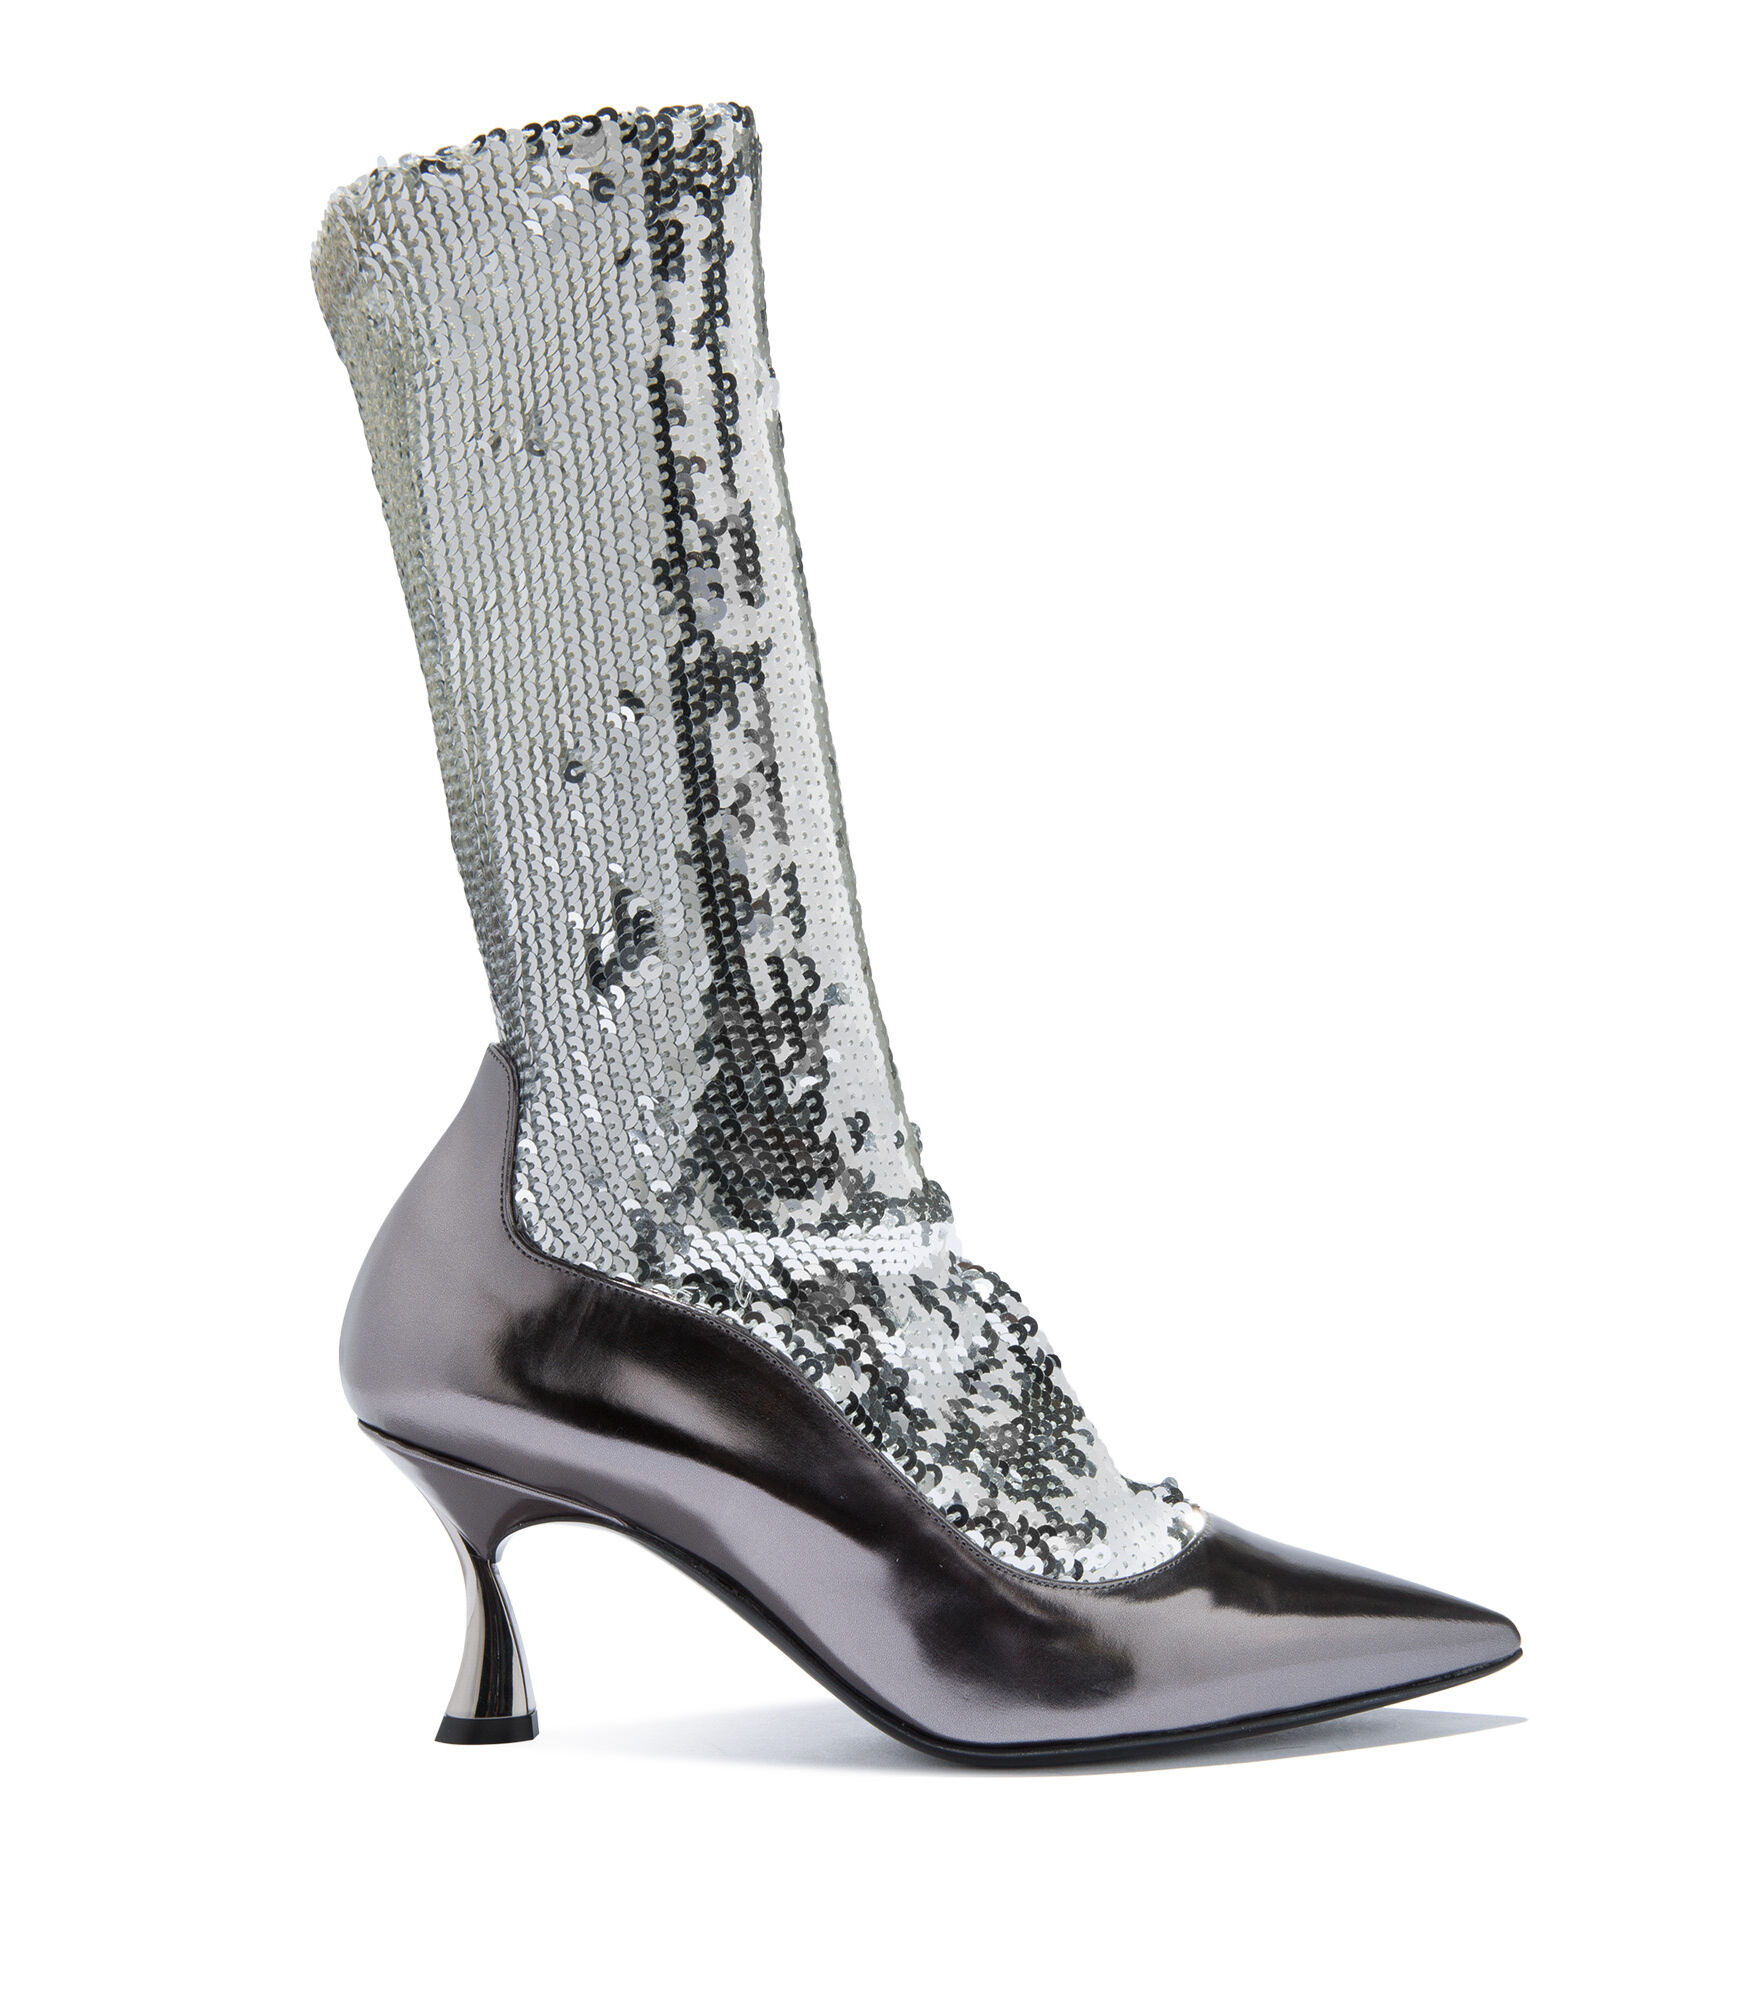 Casadei Ankle Boots - Kitten Blade Zinc Elasticated socks covered in sequins